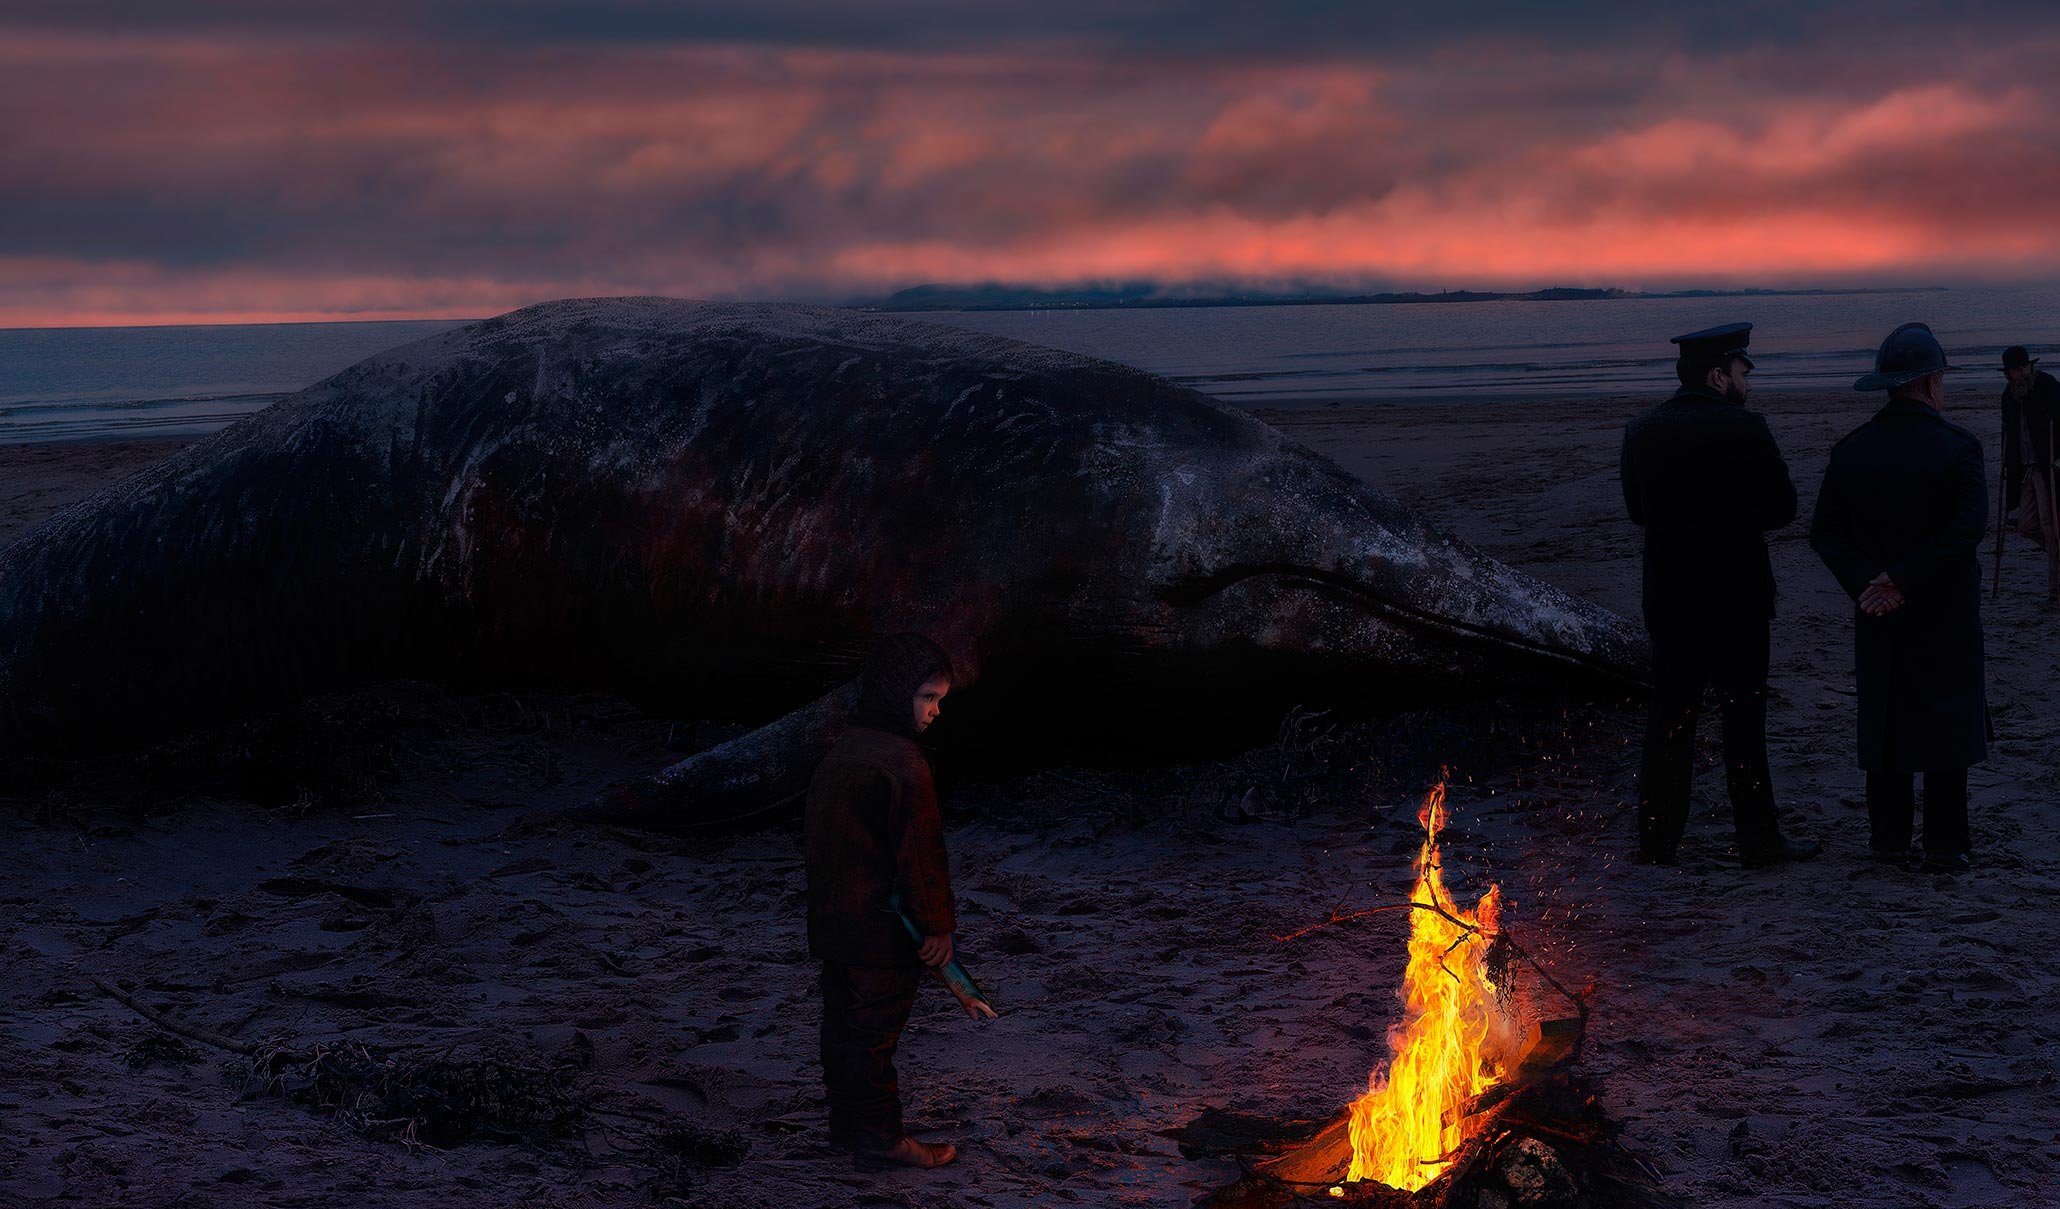 Whale whashed up on the beach at night